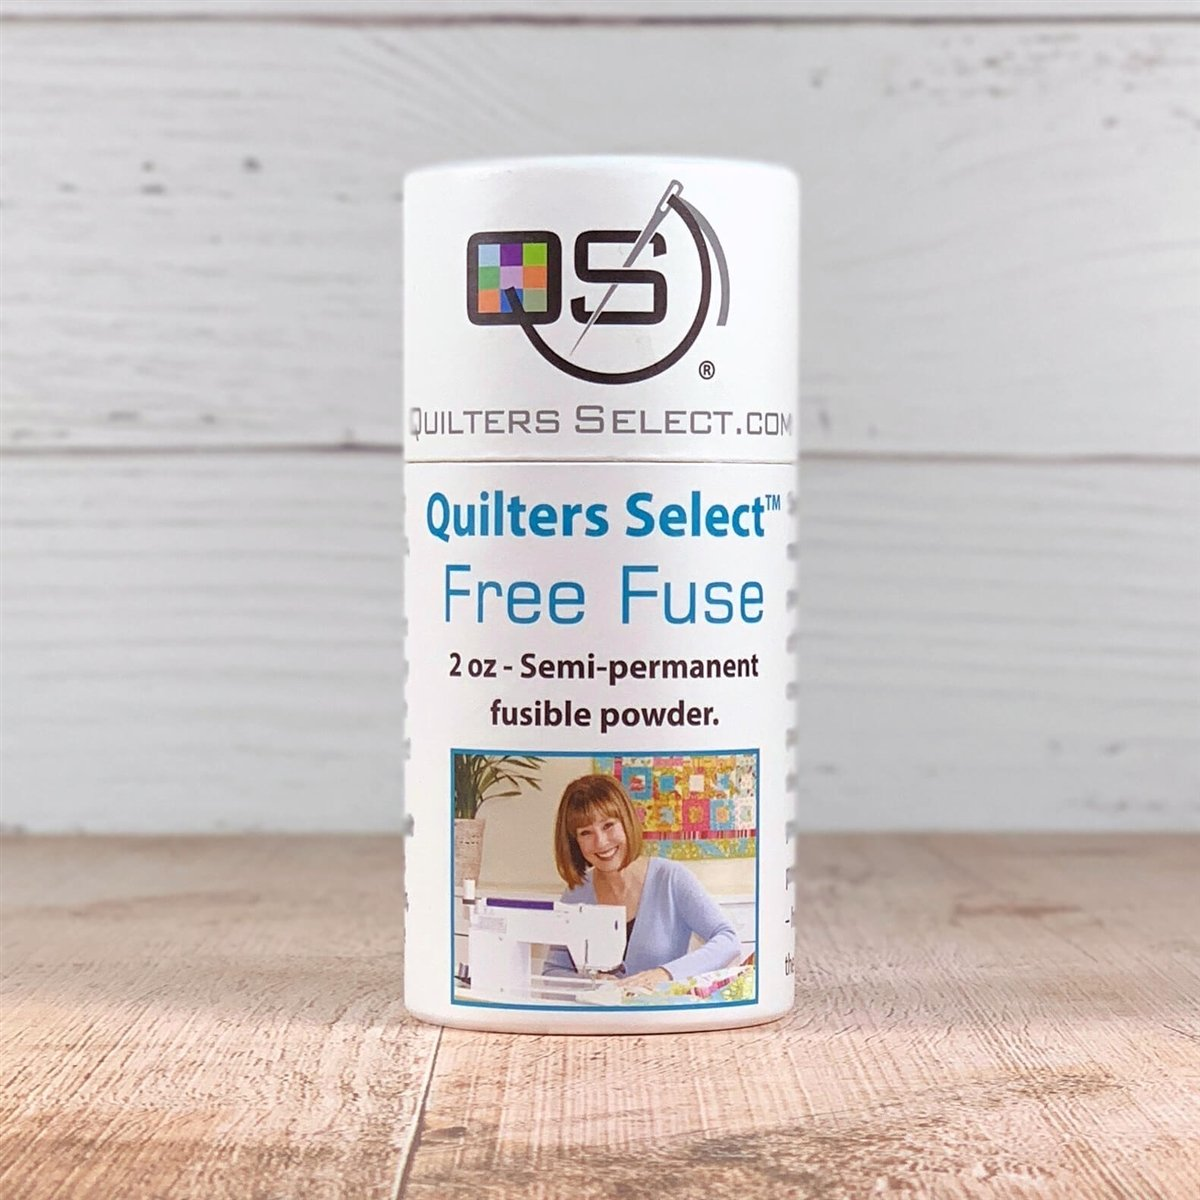 FREE FUSE - QUILTER'S SELECT